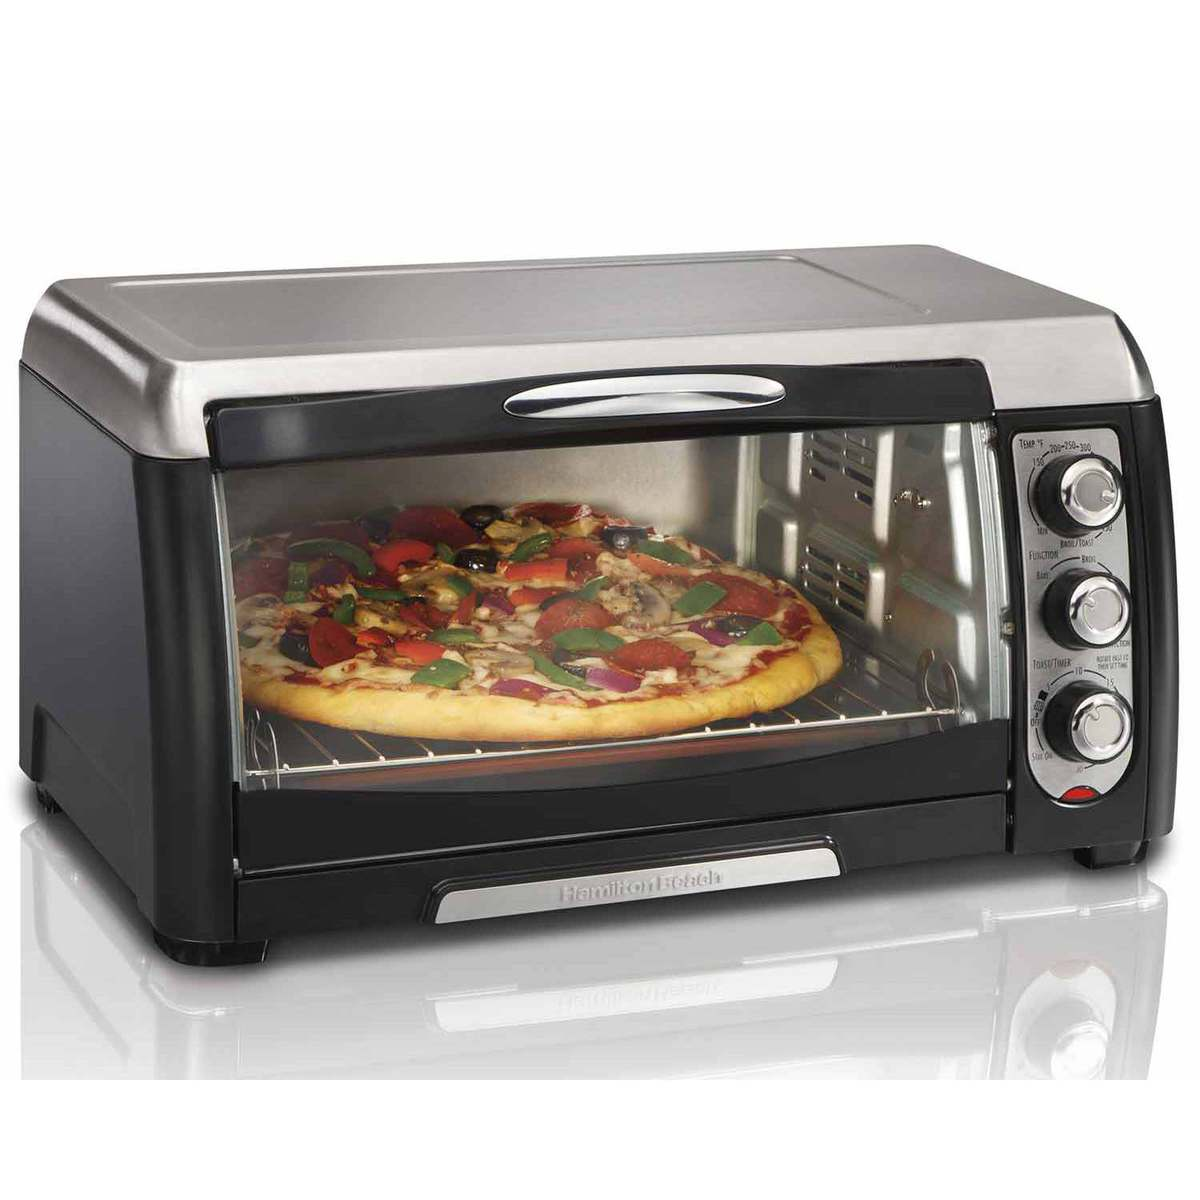 Convection Toaster Oven (31331)